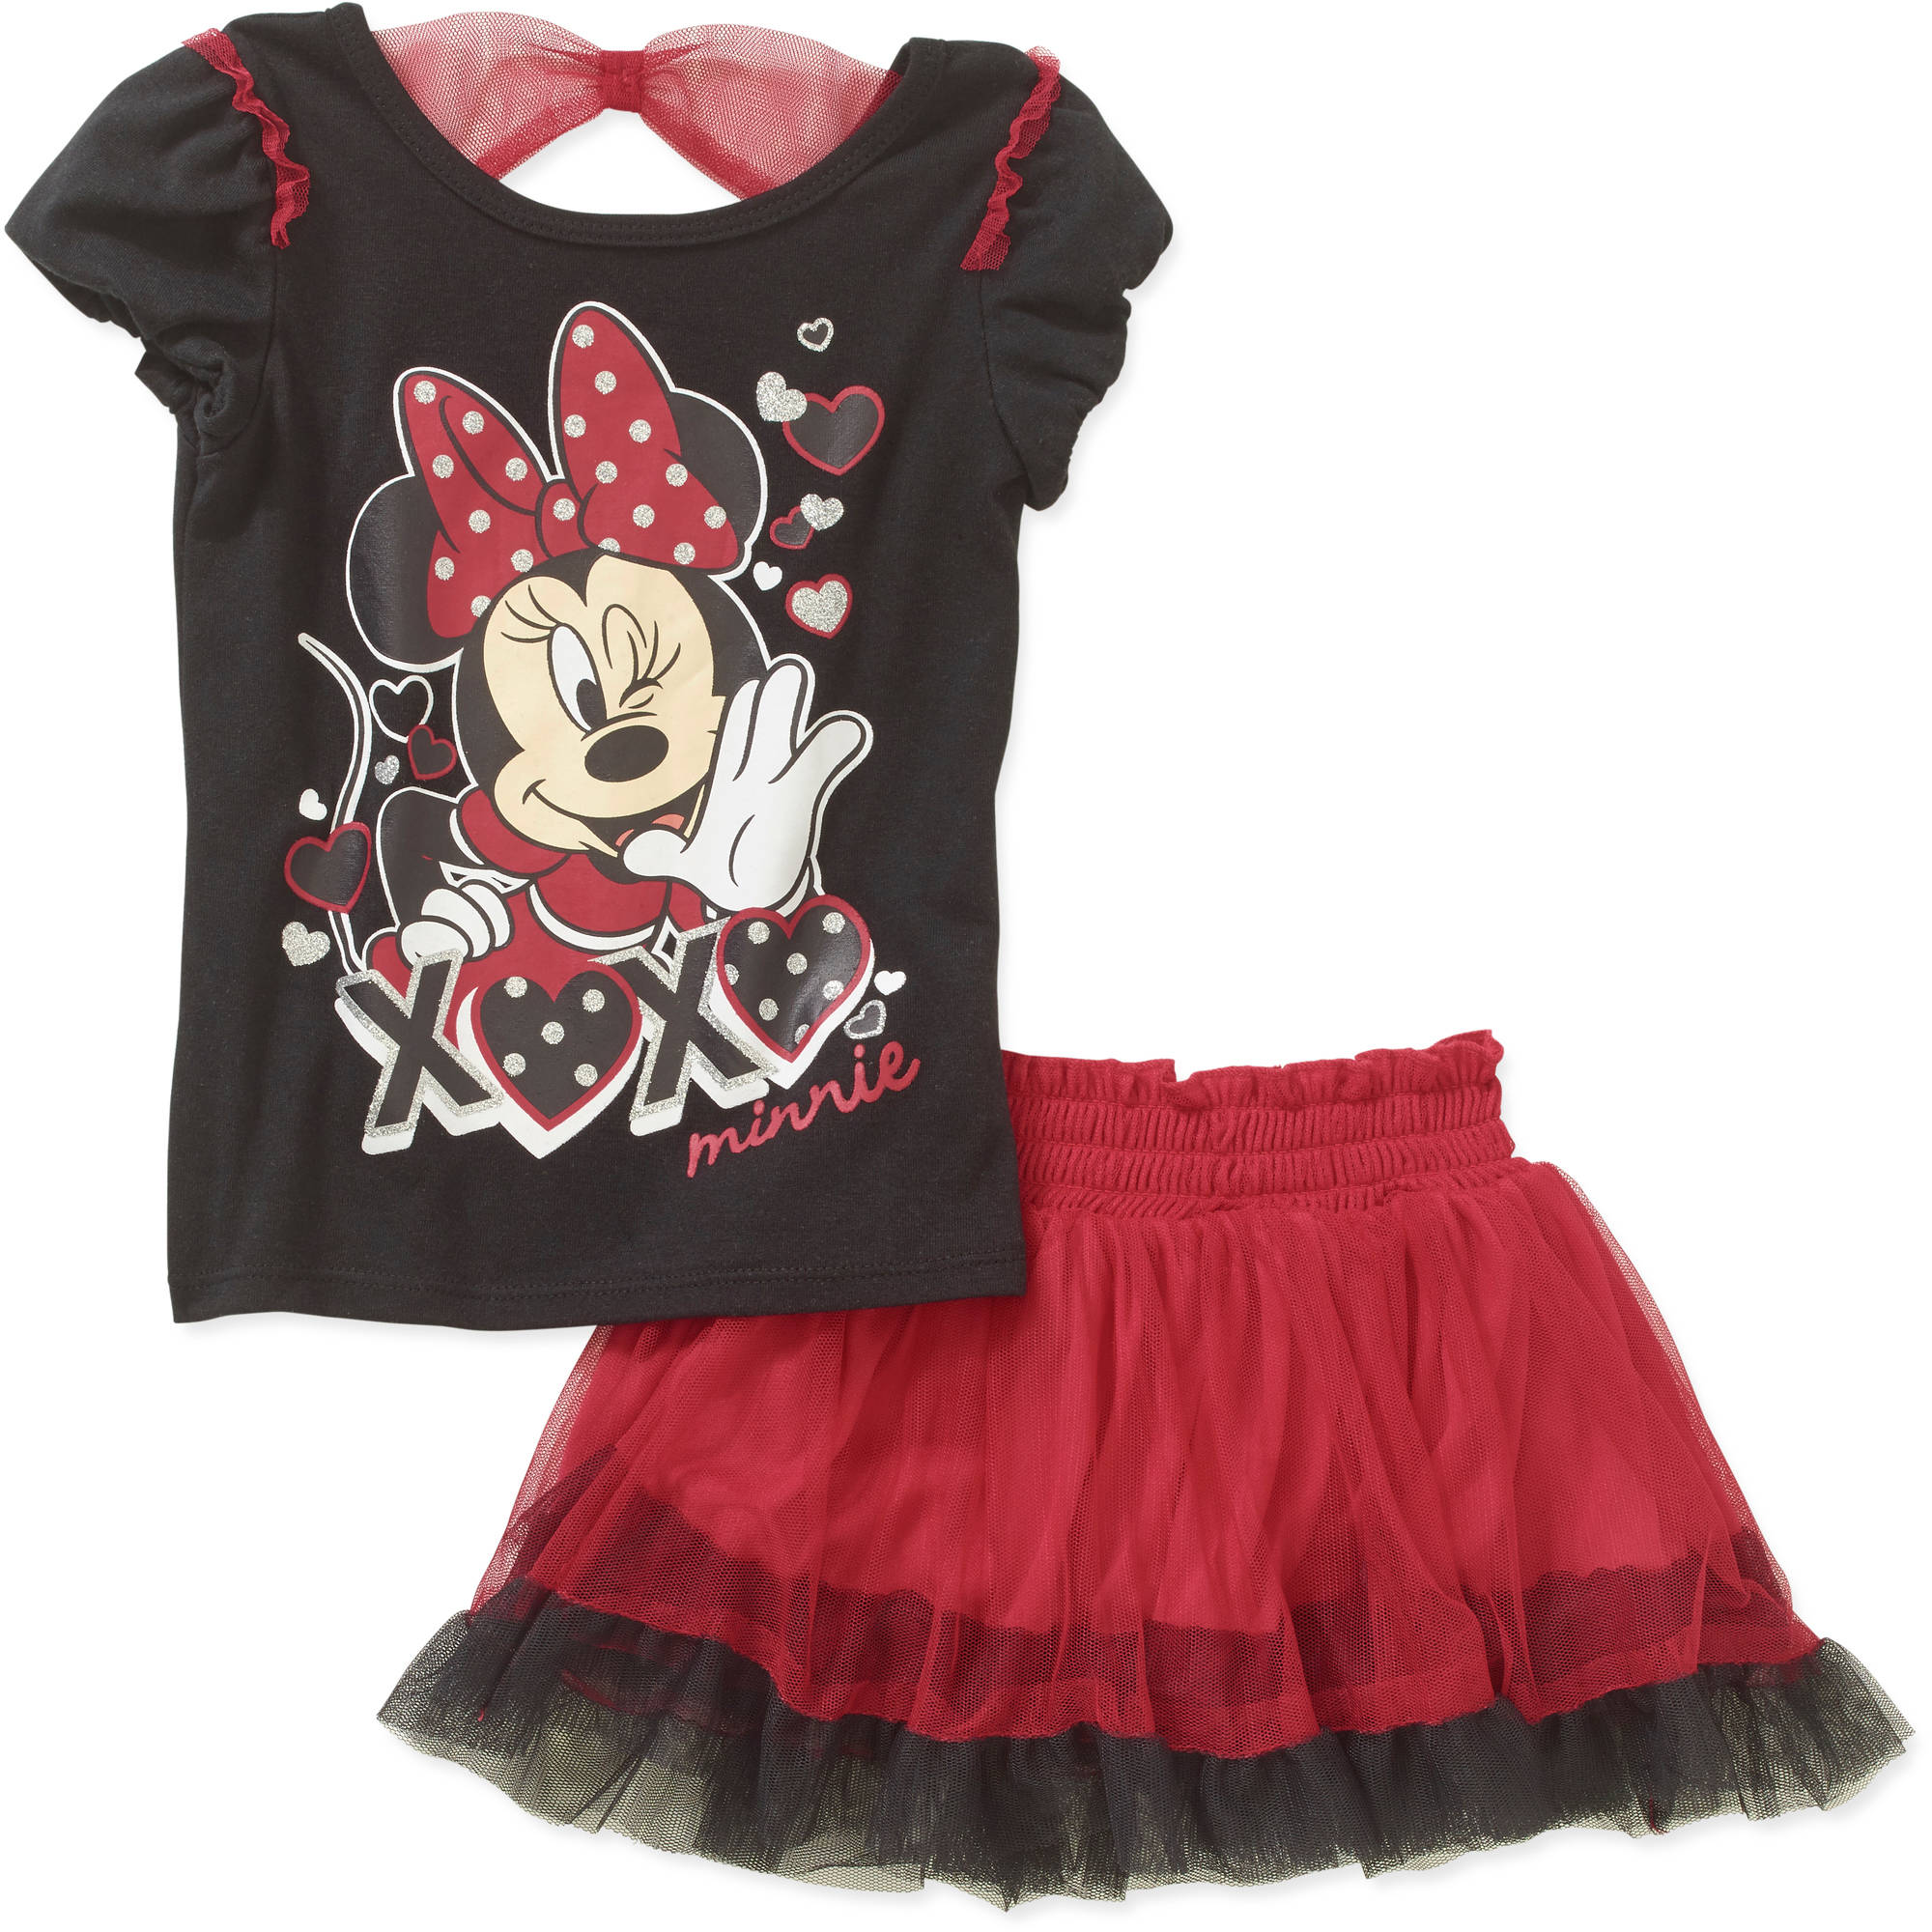 Minnie Mouse Toddler Girls' XOXO Tee and Scooter Set